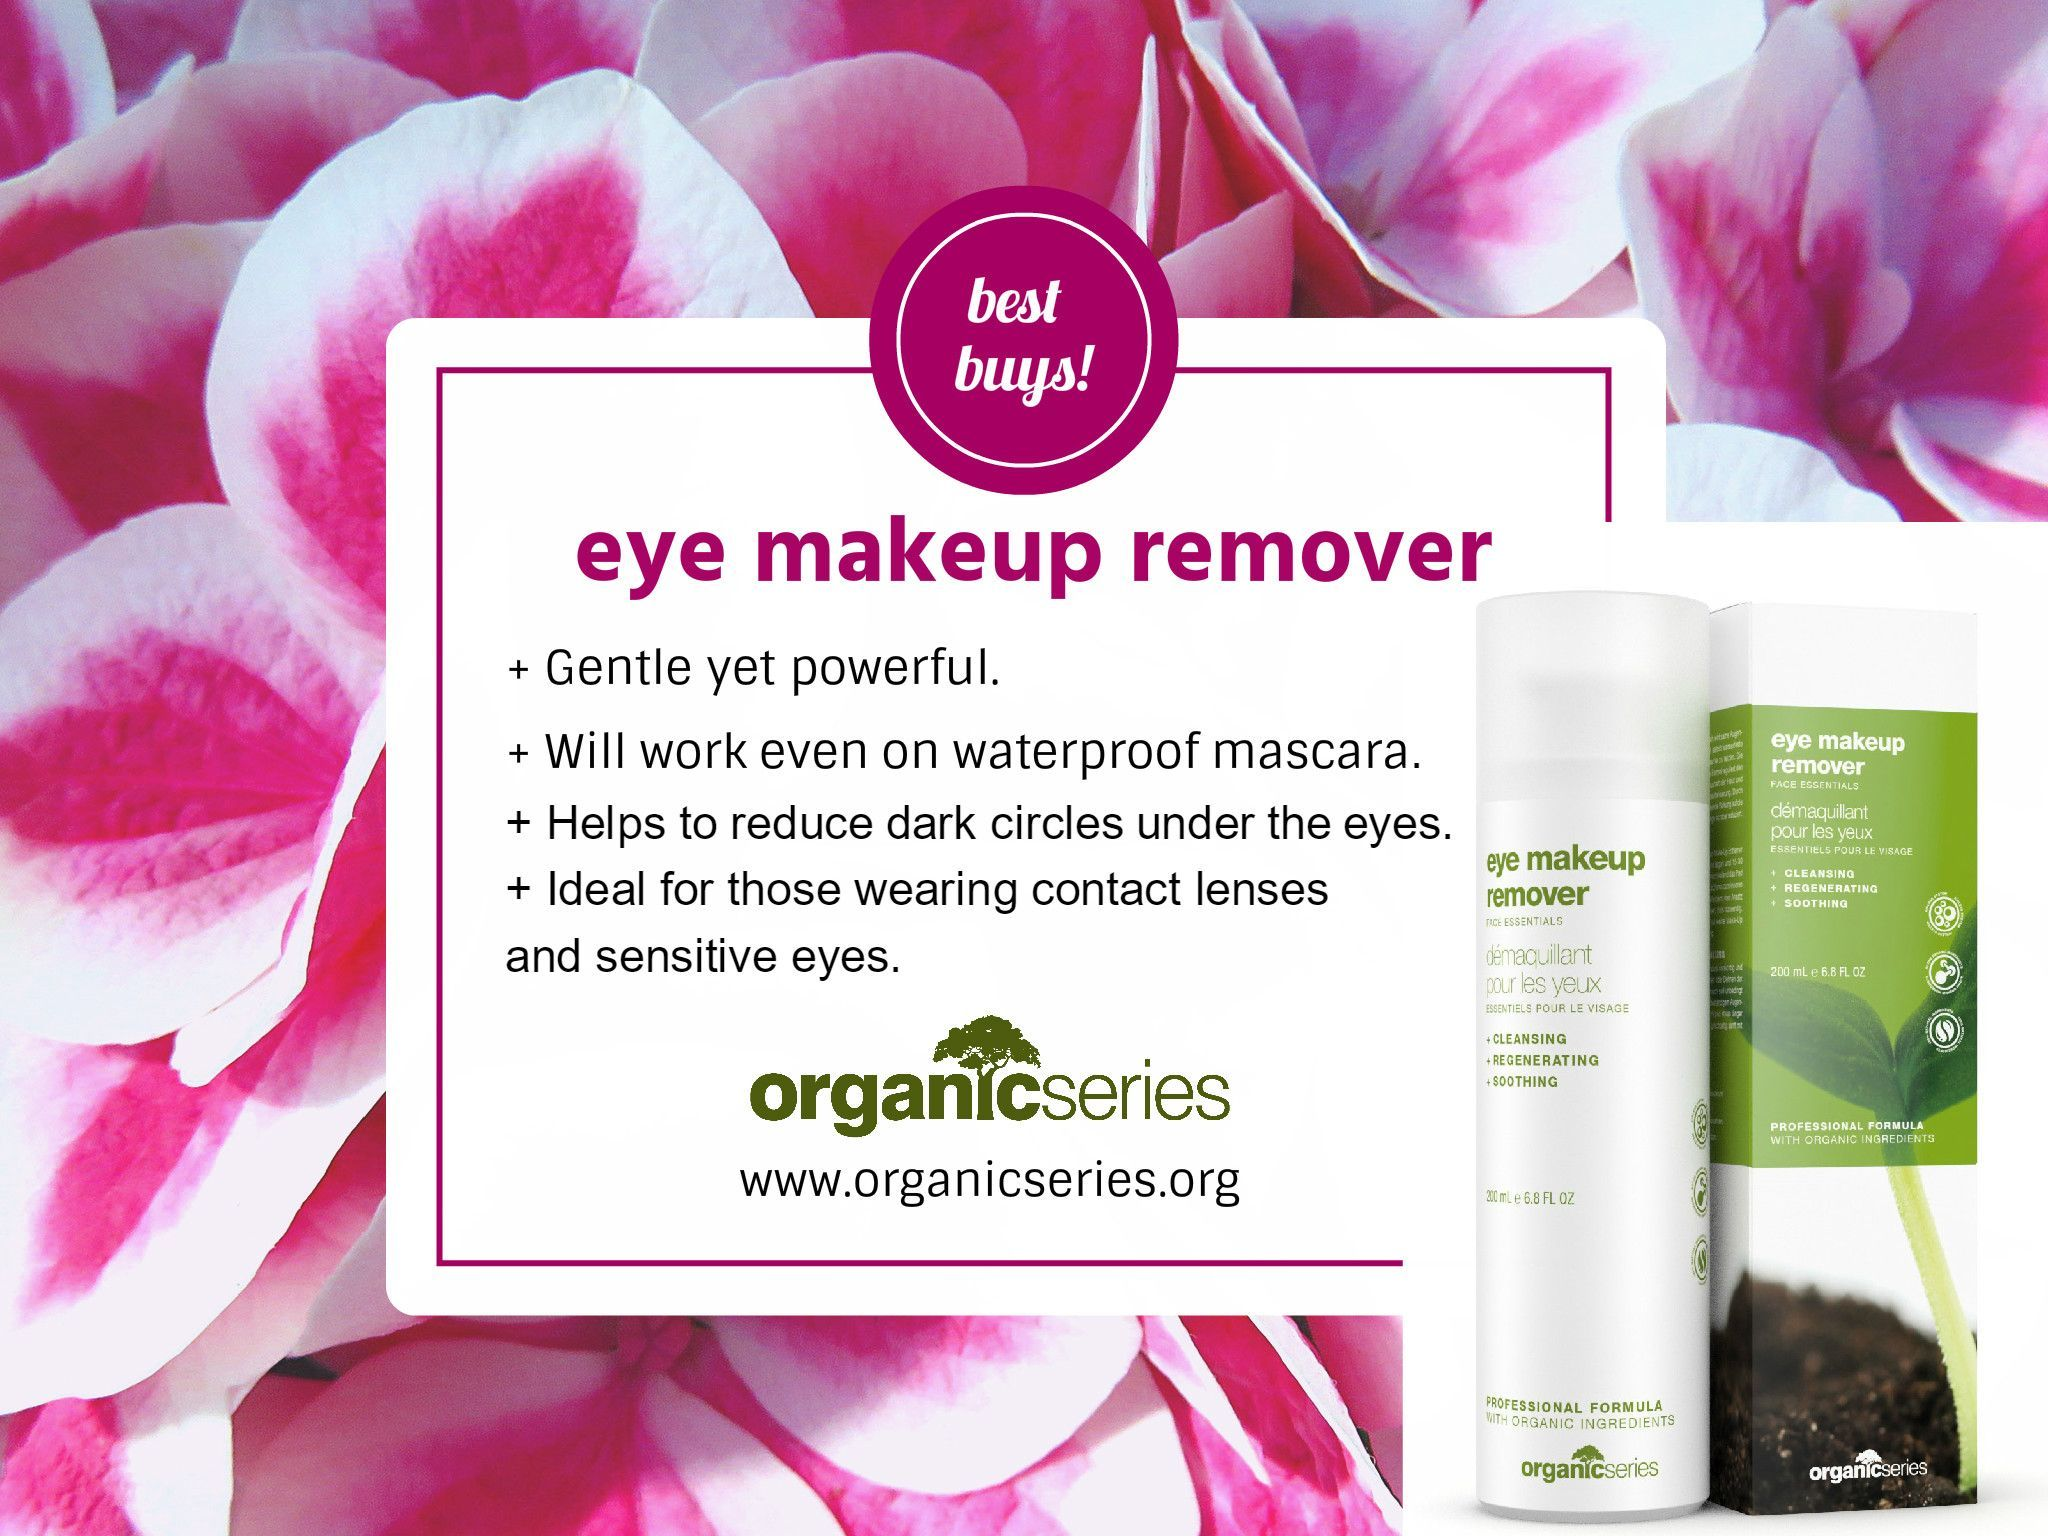 Organic Series eye makeup remover is a wonderful skin